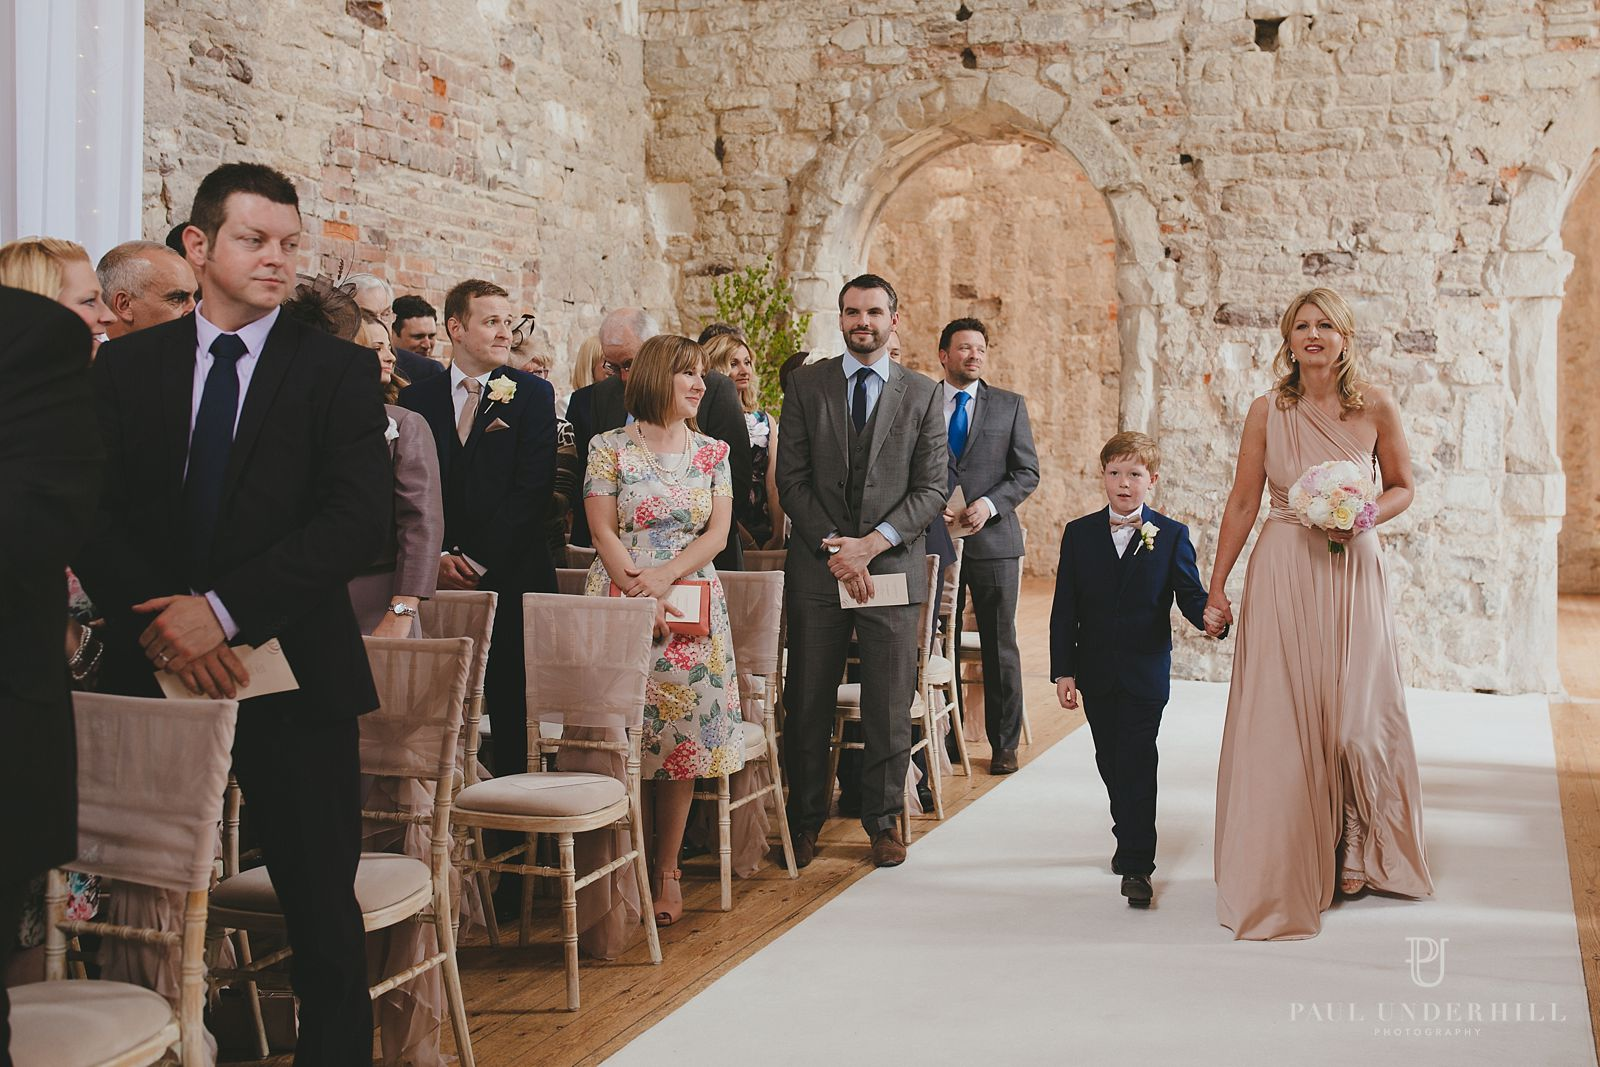 Lulworth Castle wedding ceremony